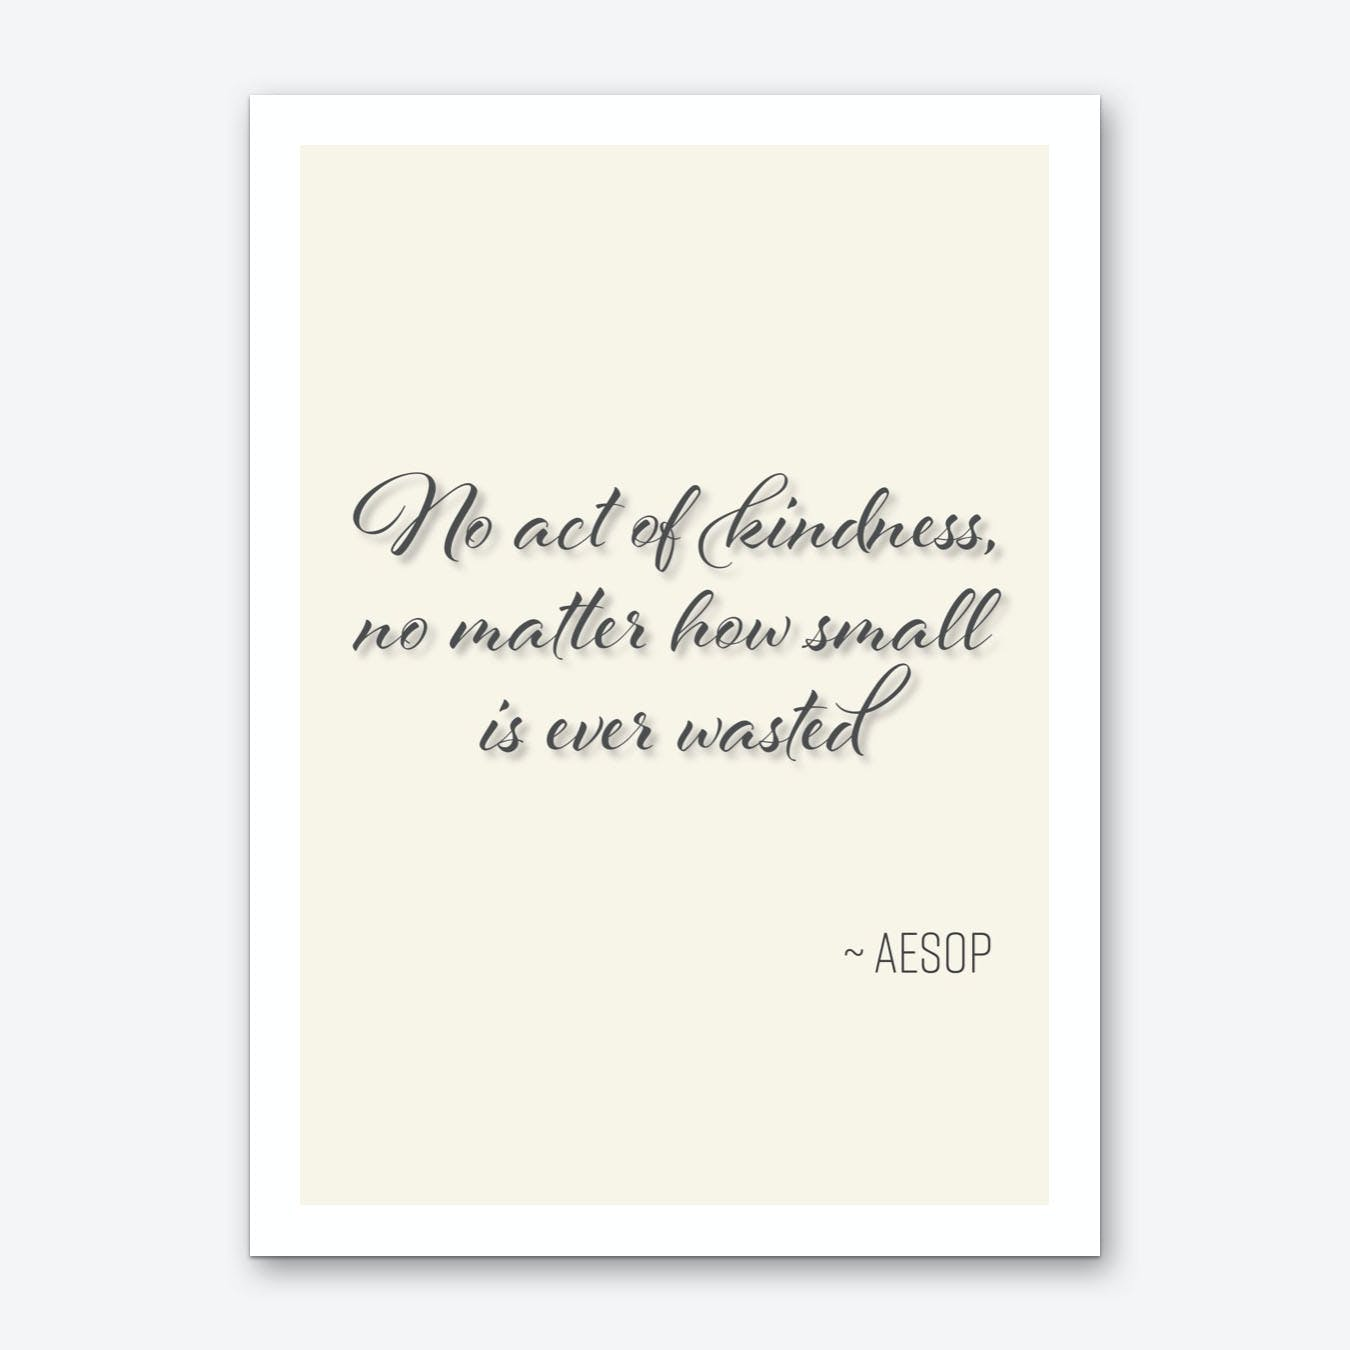 Aesop Quote on Kindness Art Print